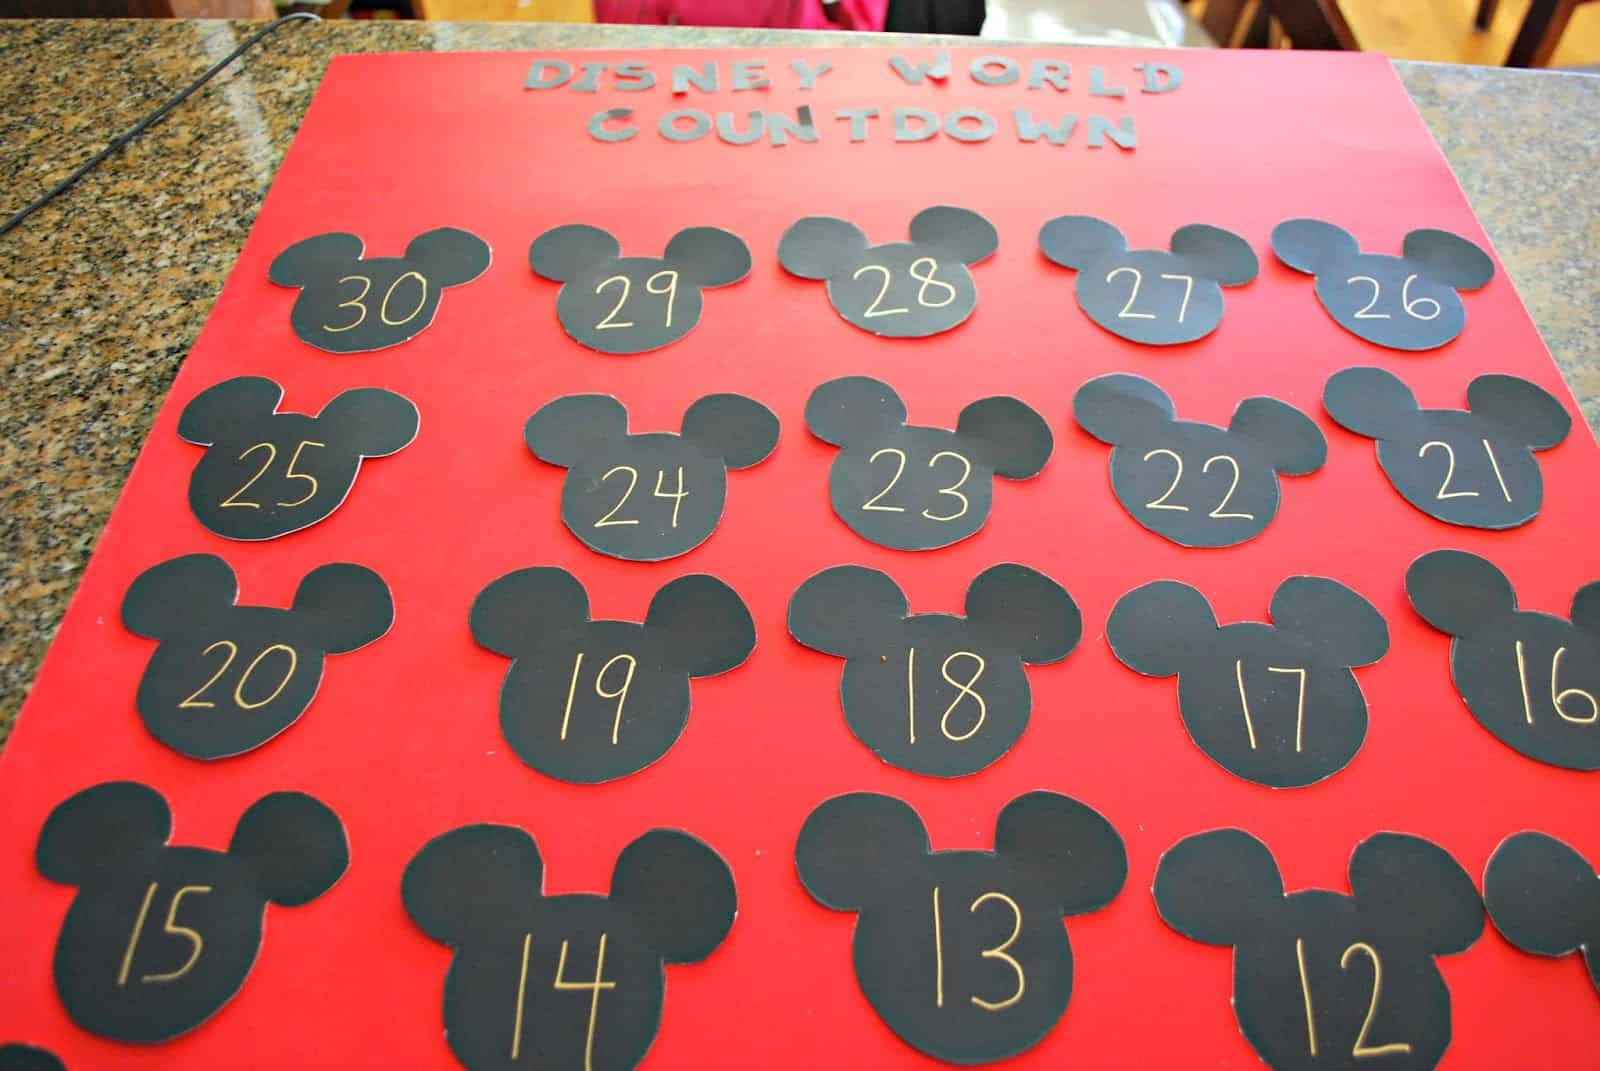 making a countdown calendar for a Disney World trip.